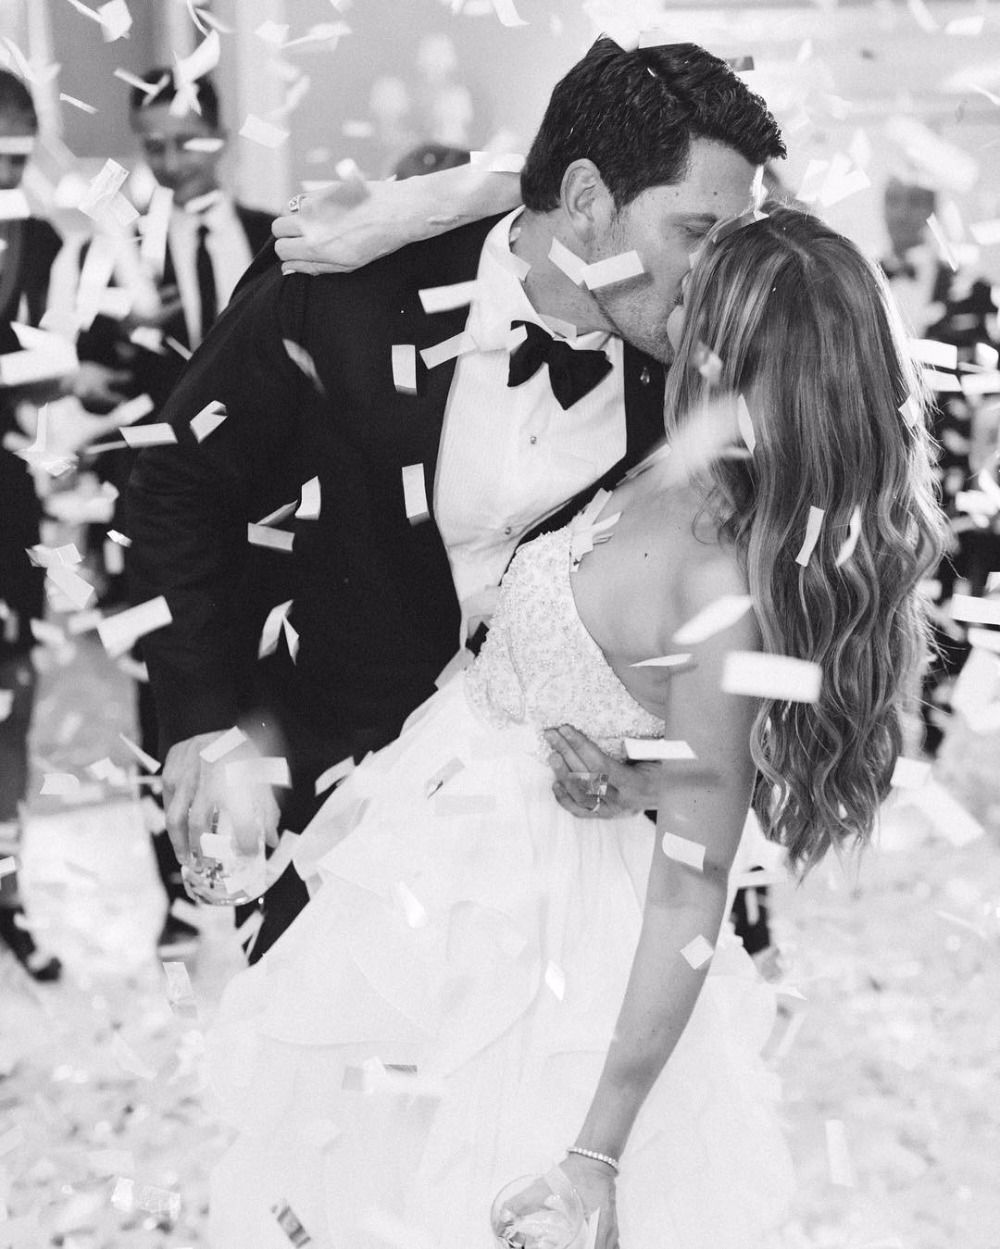 Top 10 First Dance Songs: 10 Romantic Songs For Your First Dance